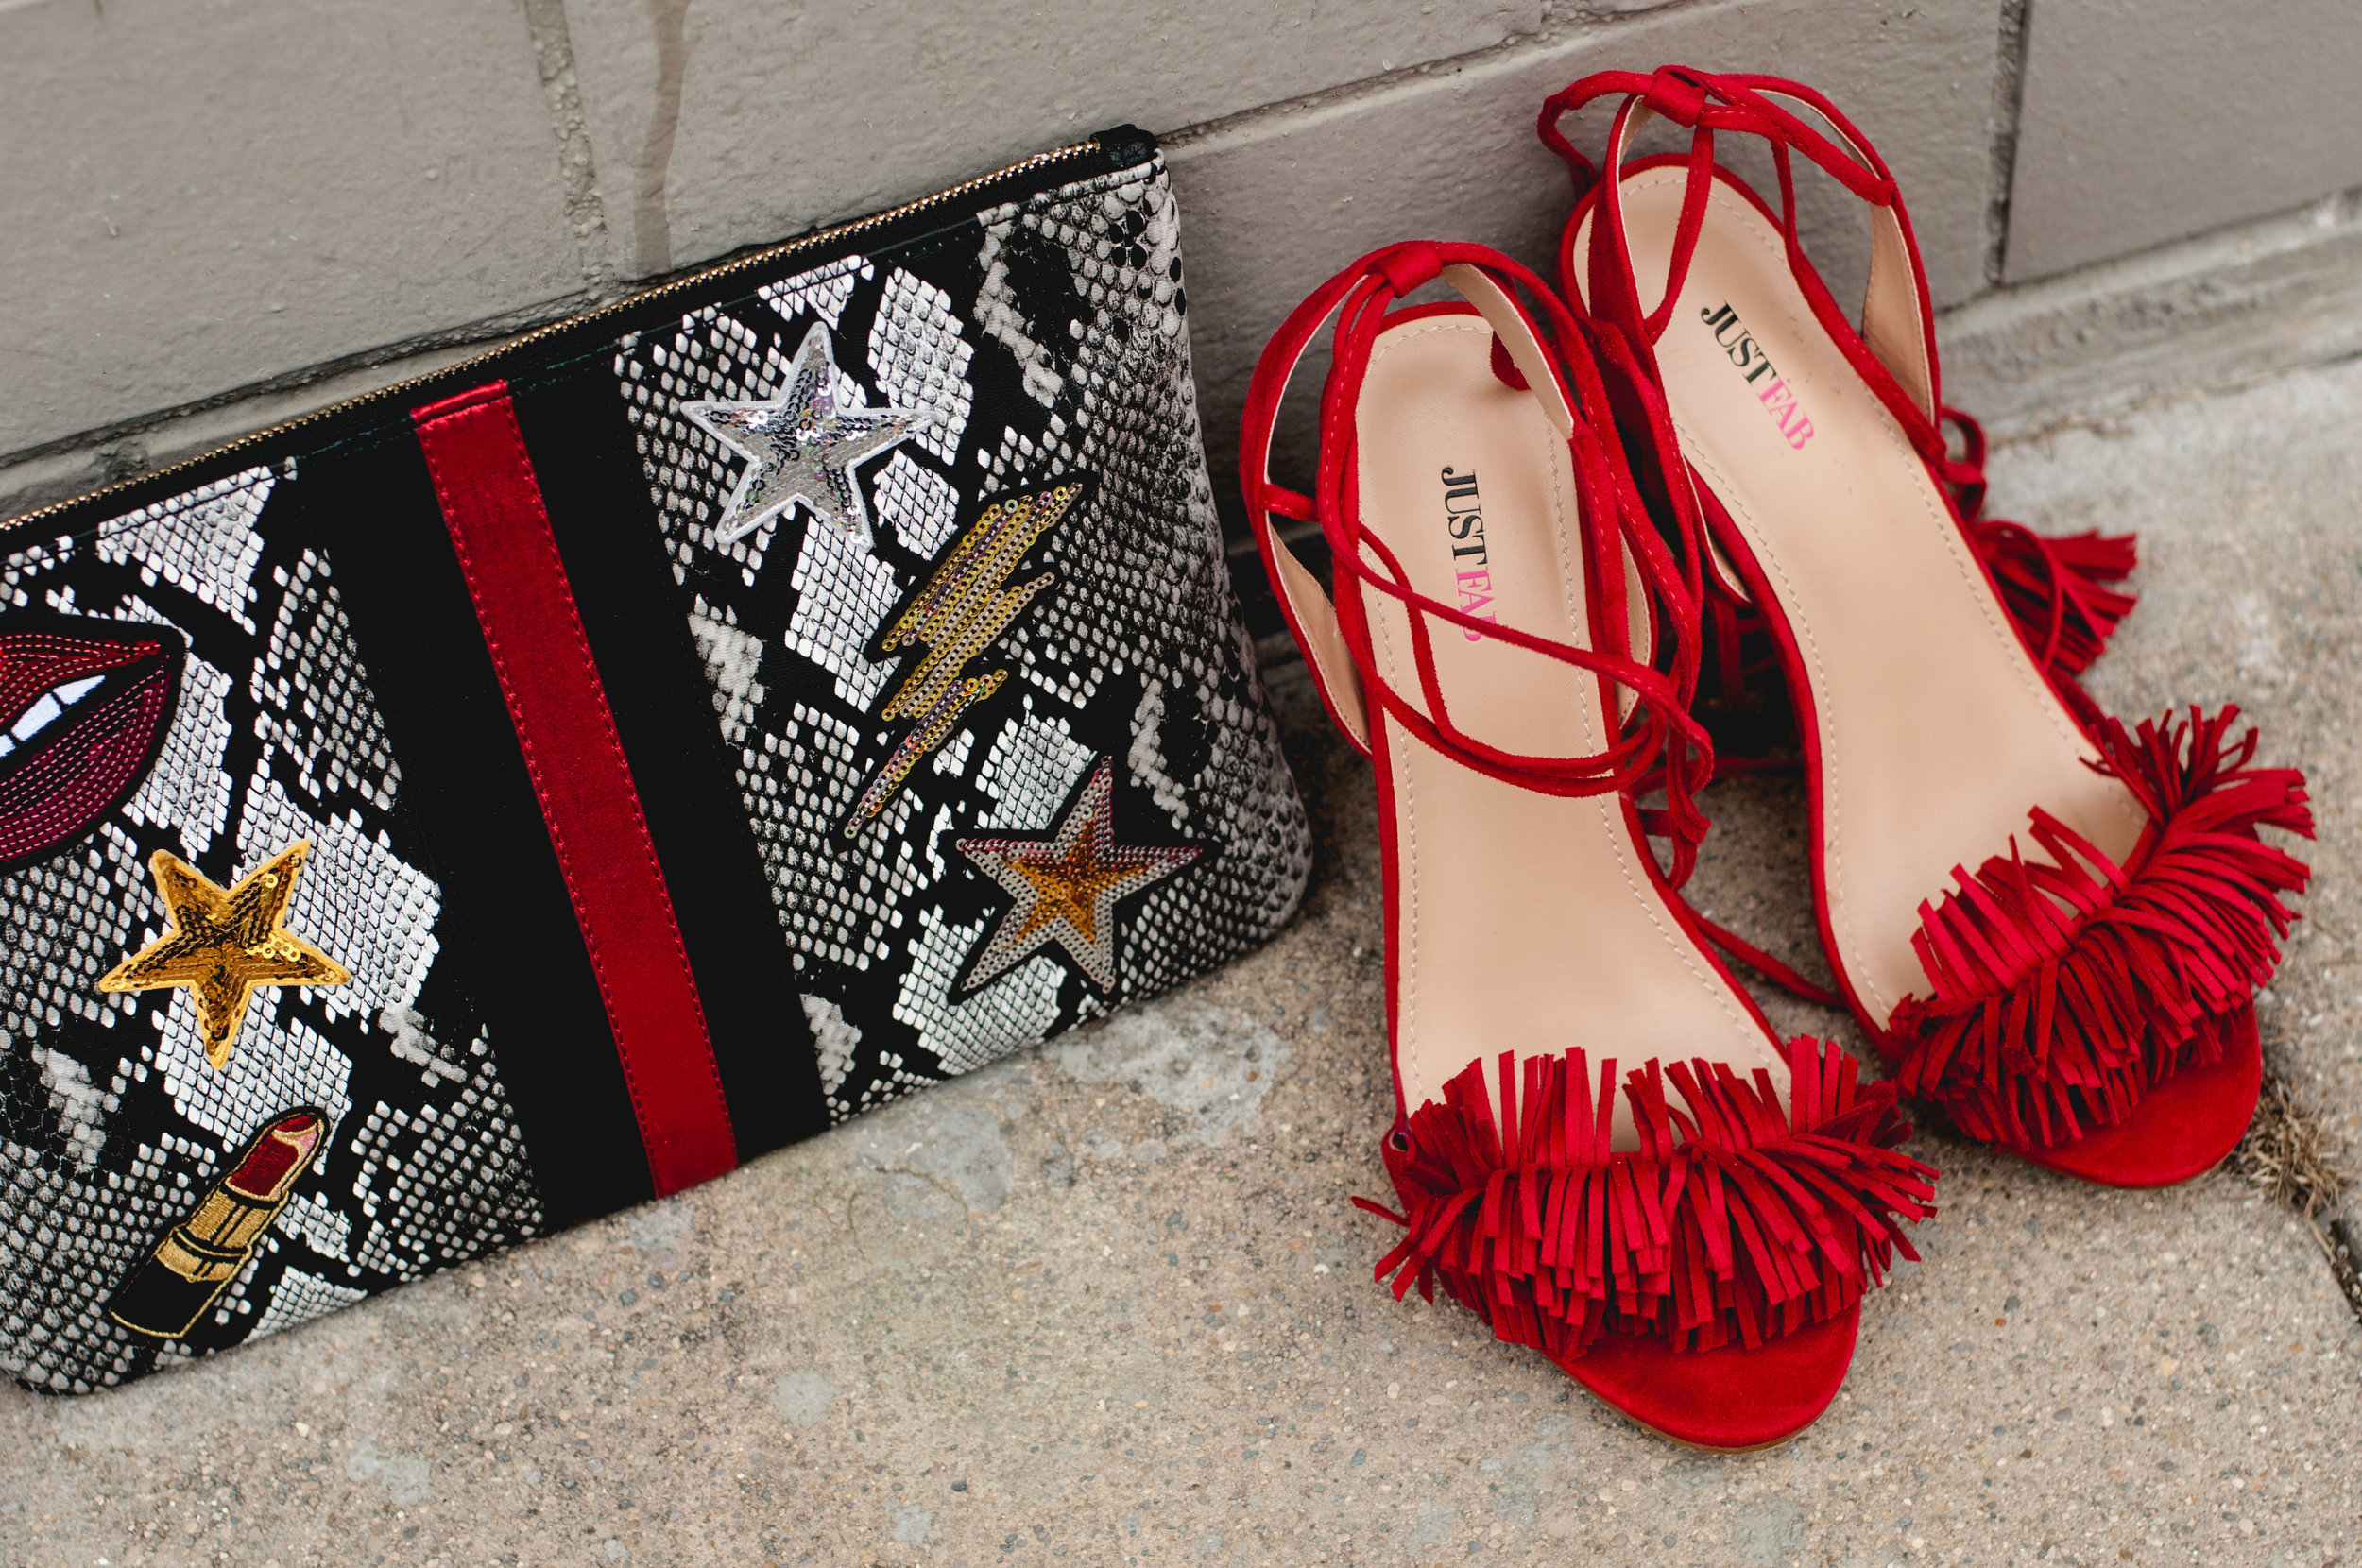 $15 clutch from DSW, $20 shoes from JustFab> My Style- Priceless.